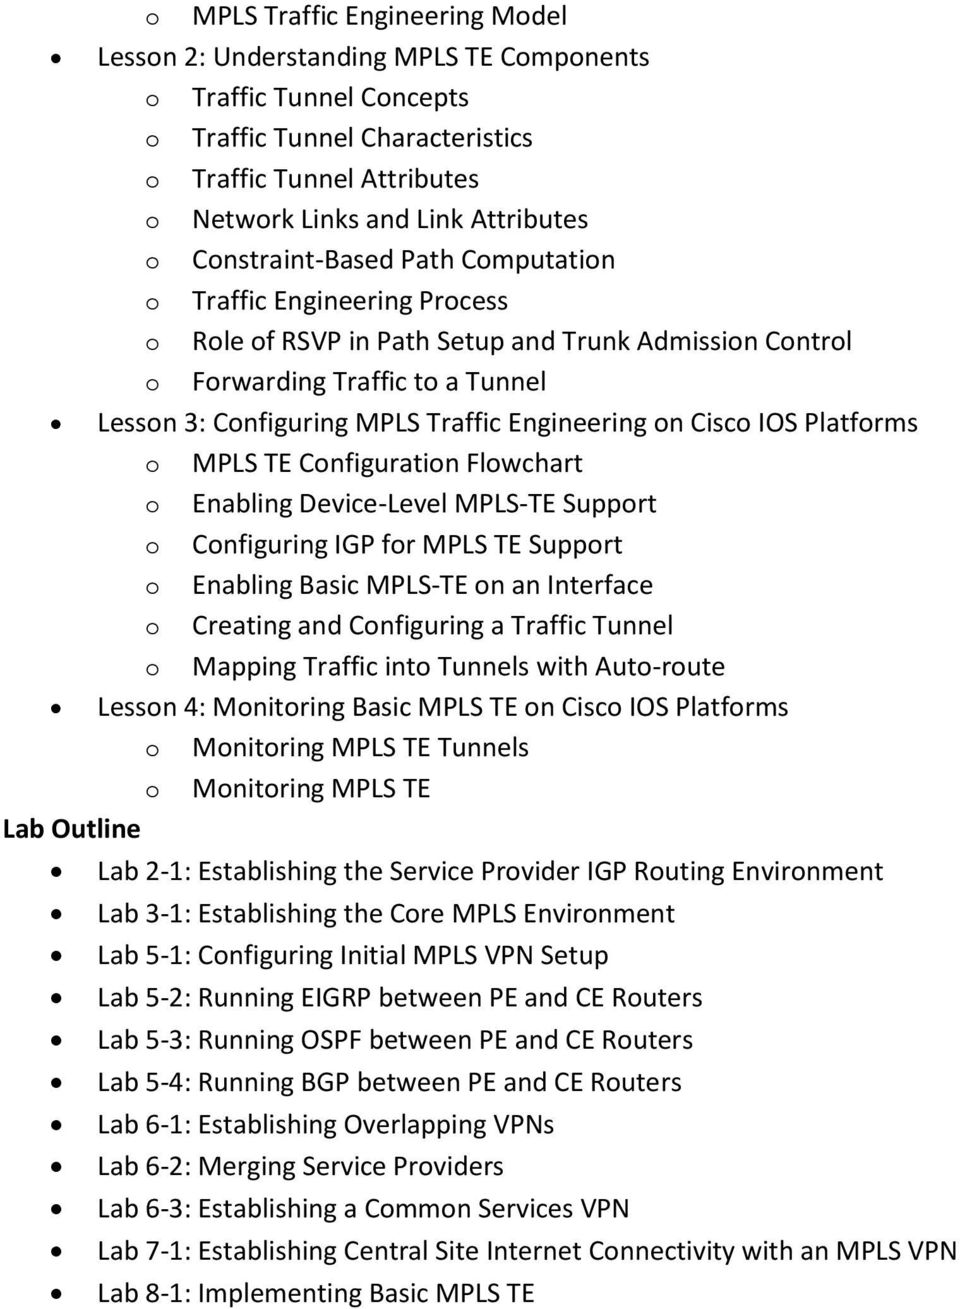 Engineering on Cisco IOS Platforms o MPLS TE Configuration Flowchart o Enabling Device-Level MPLS-TE Support o Configuring IGP for MPLS TE Support o Enabling Basic MPLS-TE on an Interface o Creating